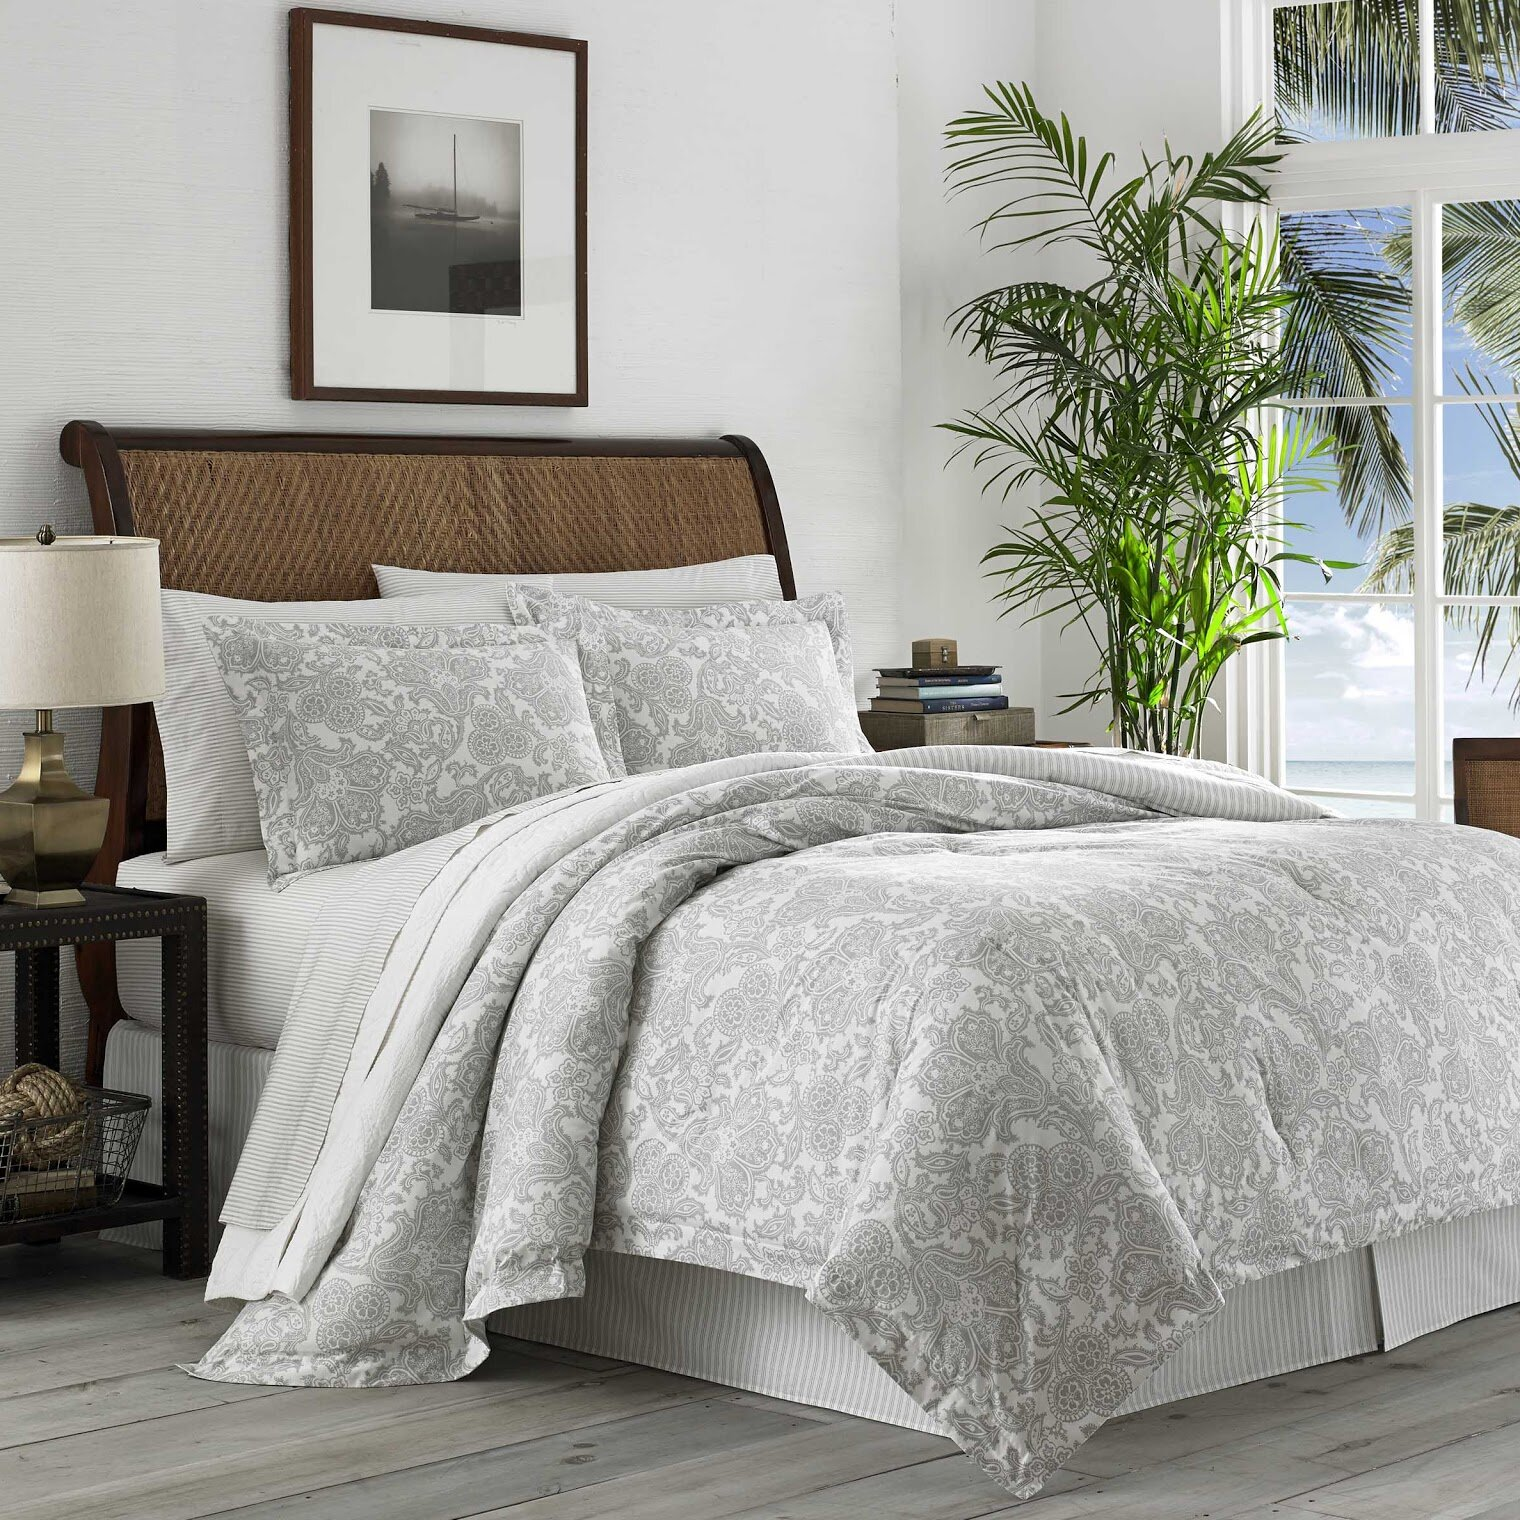 Tommy Bahama Home Island Memory 4 Piece Comforter Set By Tommy Bahama  Bedding | Wayfair